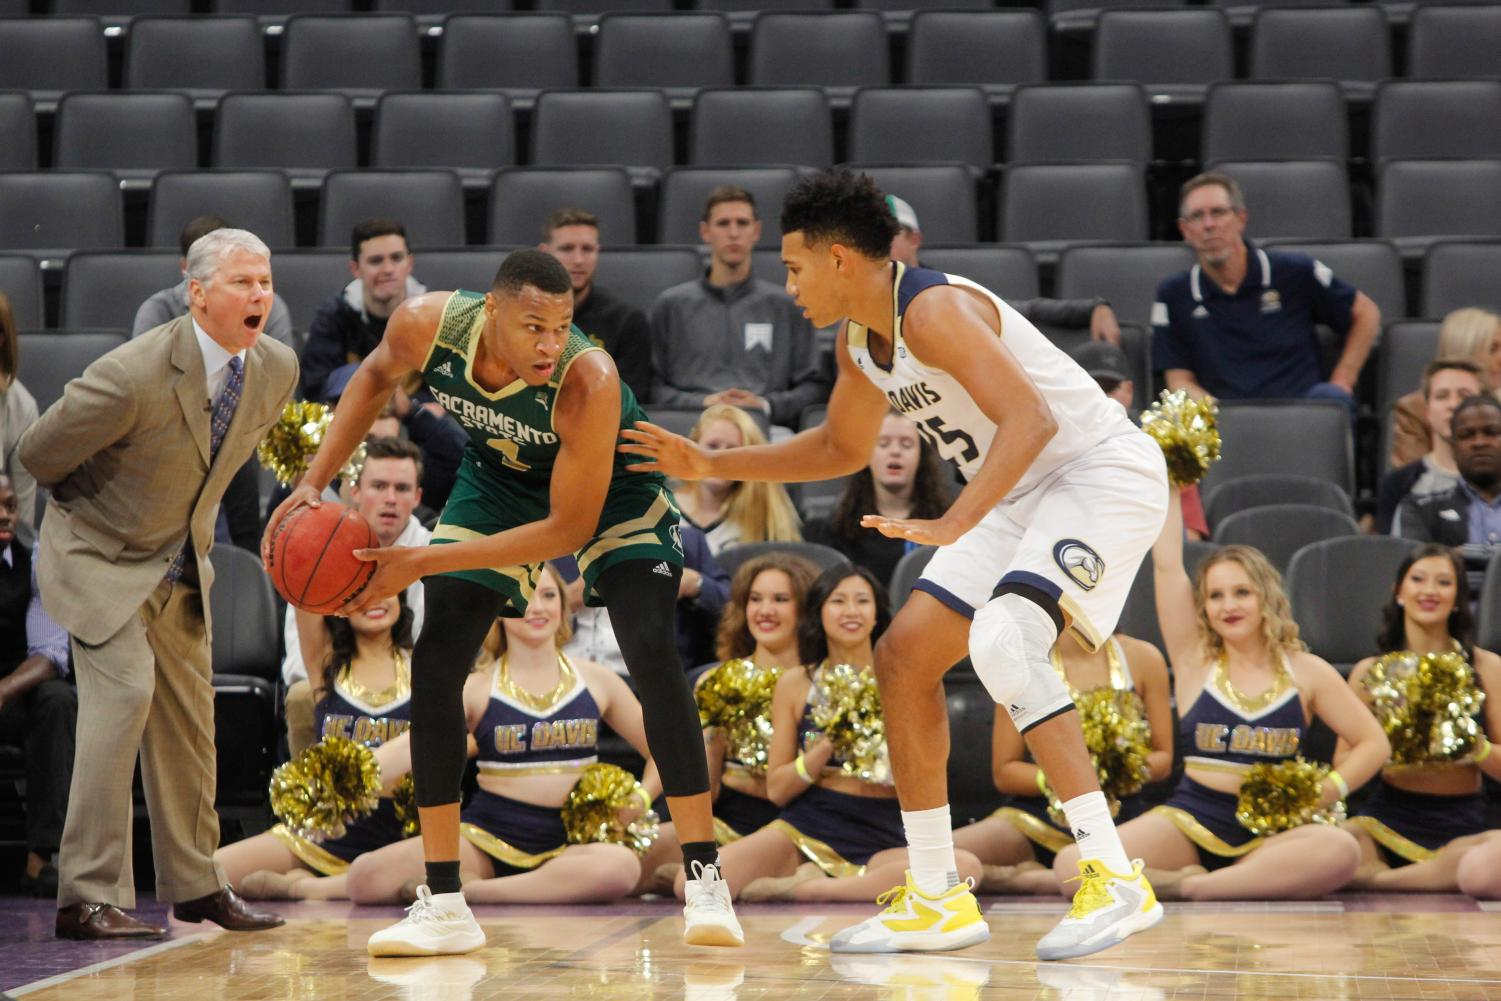 Sacramento State senior forward Justin Strings protects the ball against UC Davis junior forward AJ John Tuesday, Nov. 21 at the Golden 1 Center. Strings posted 17 points, 12 rebounds and 10 turnovers in a 64-47 loss against the Aggies.